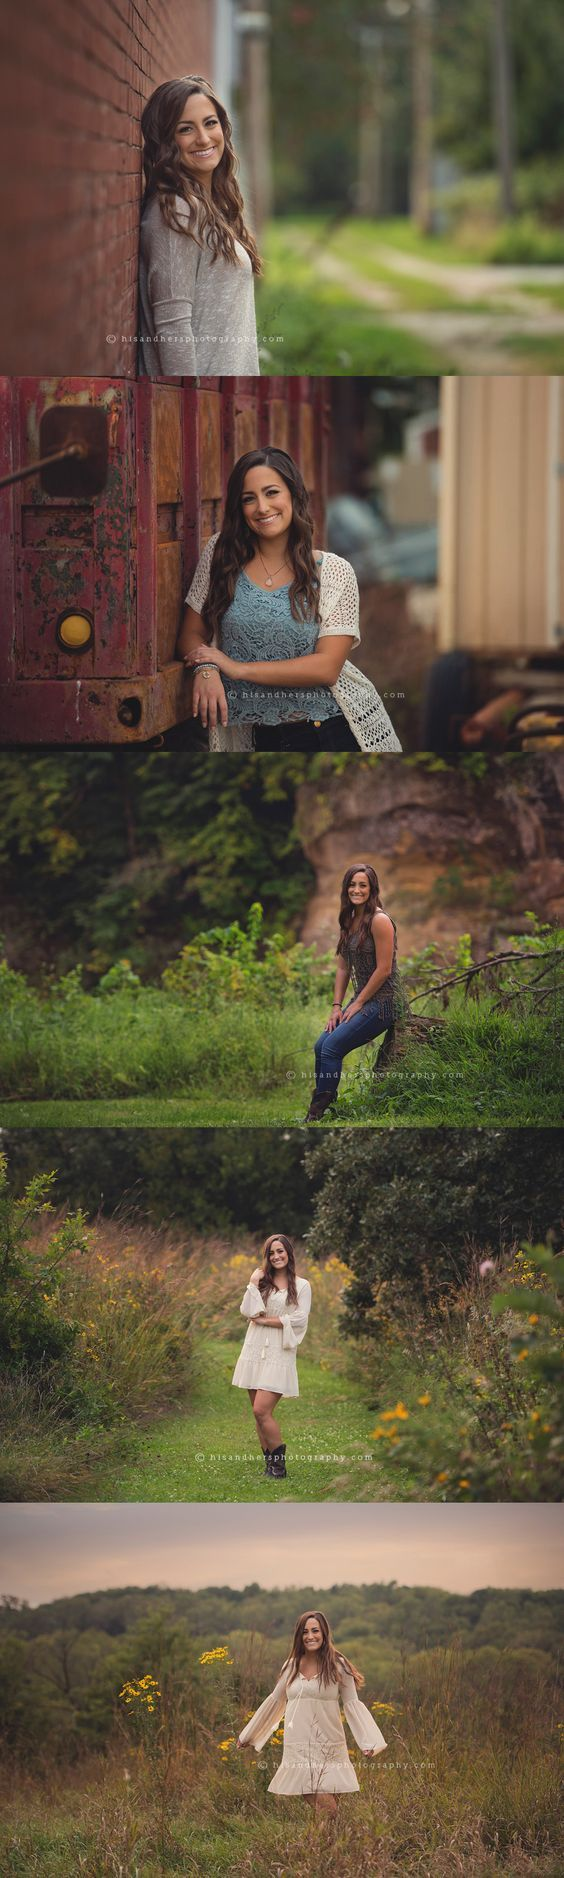 Madelyn, class of 2016 | Des Moines, Iowa photographer, Randy Milder | His & Hers